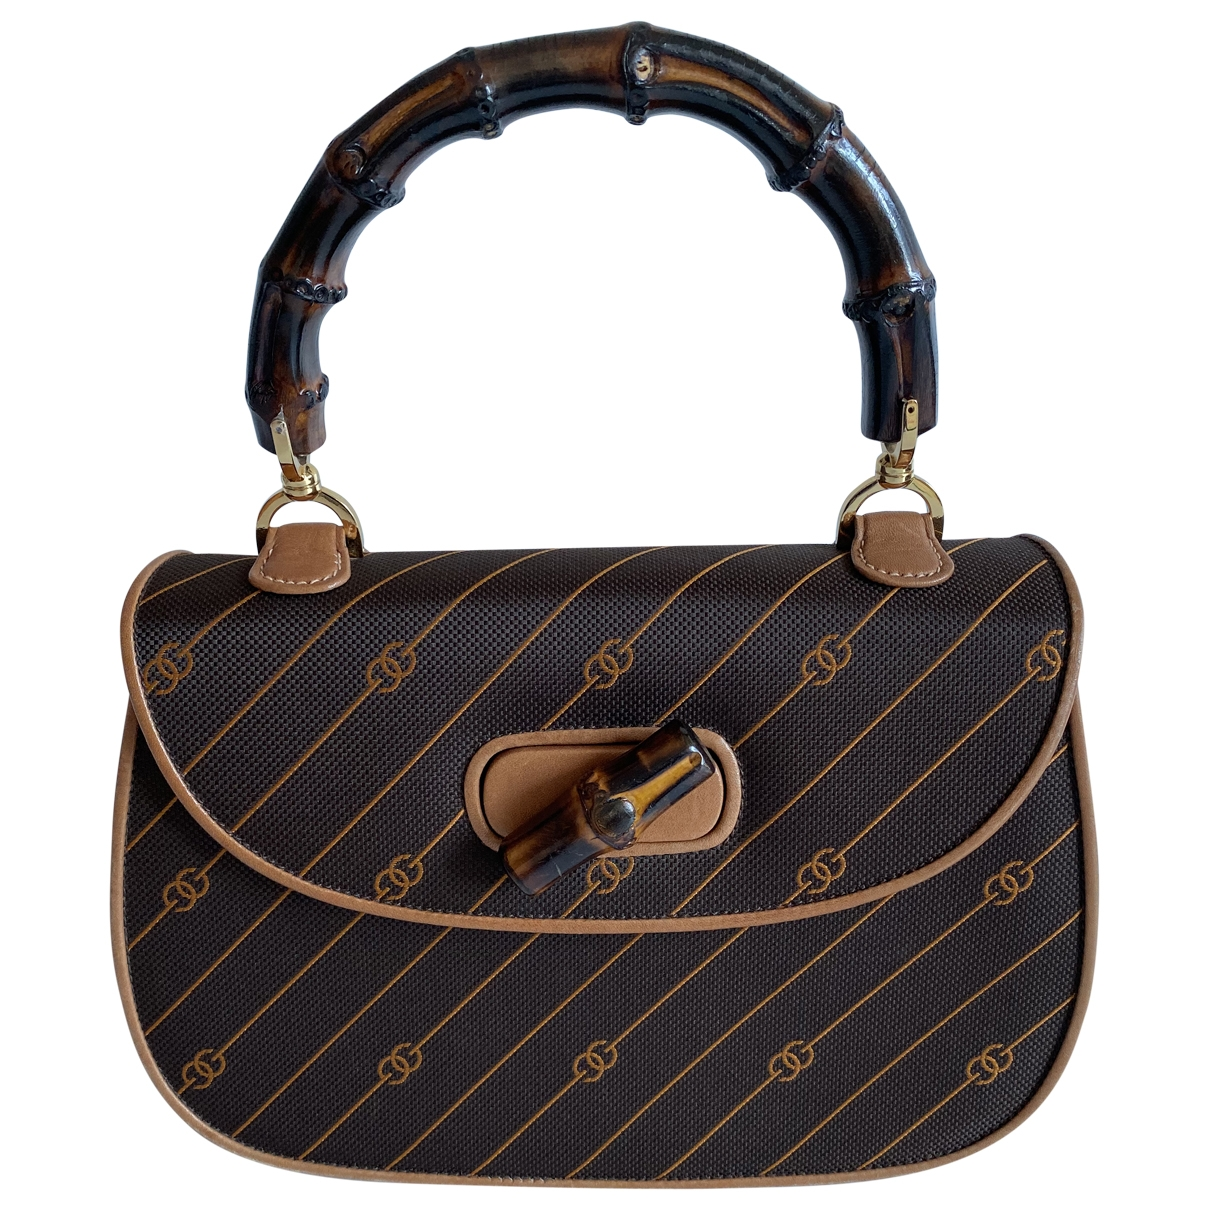 Gucci Bamboo Brown Leather handbag for Women \N